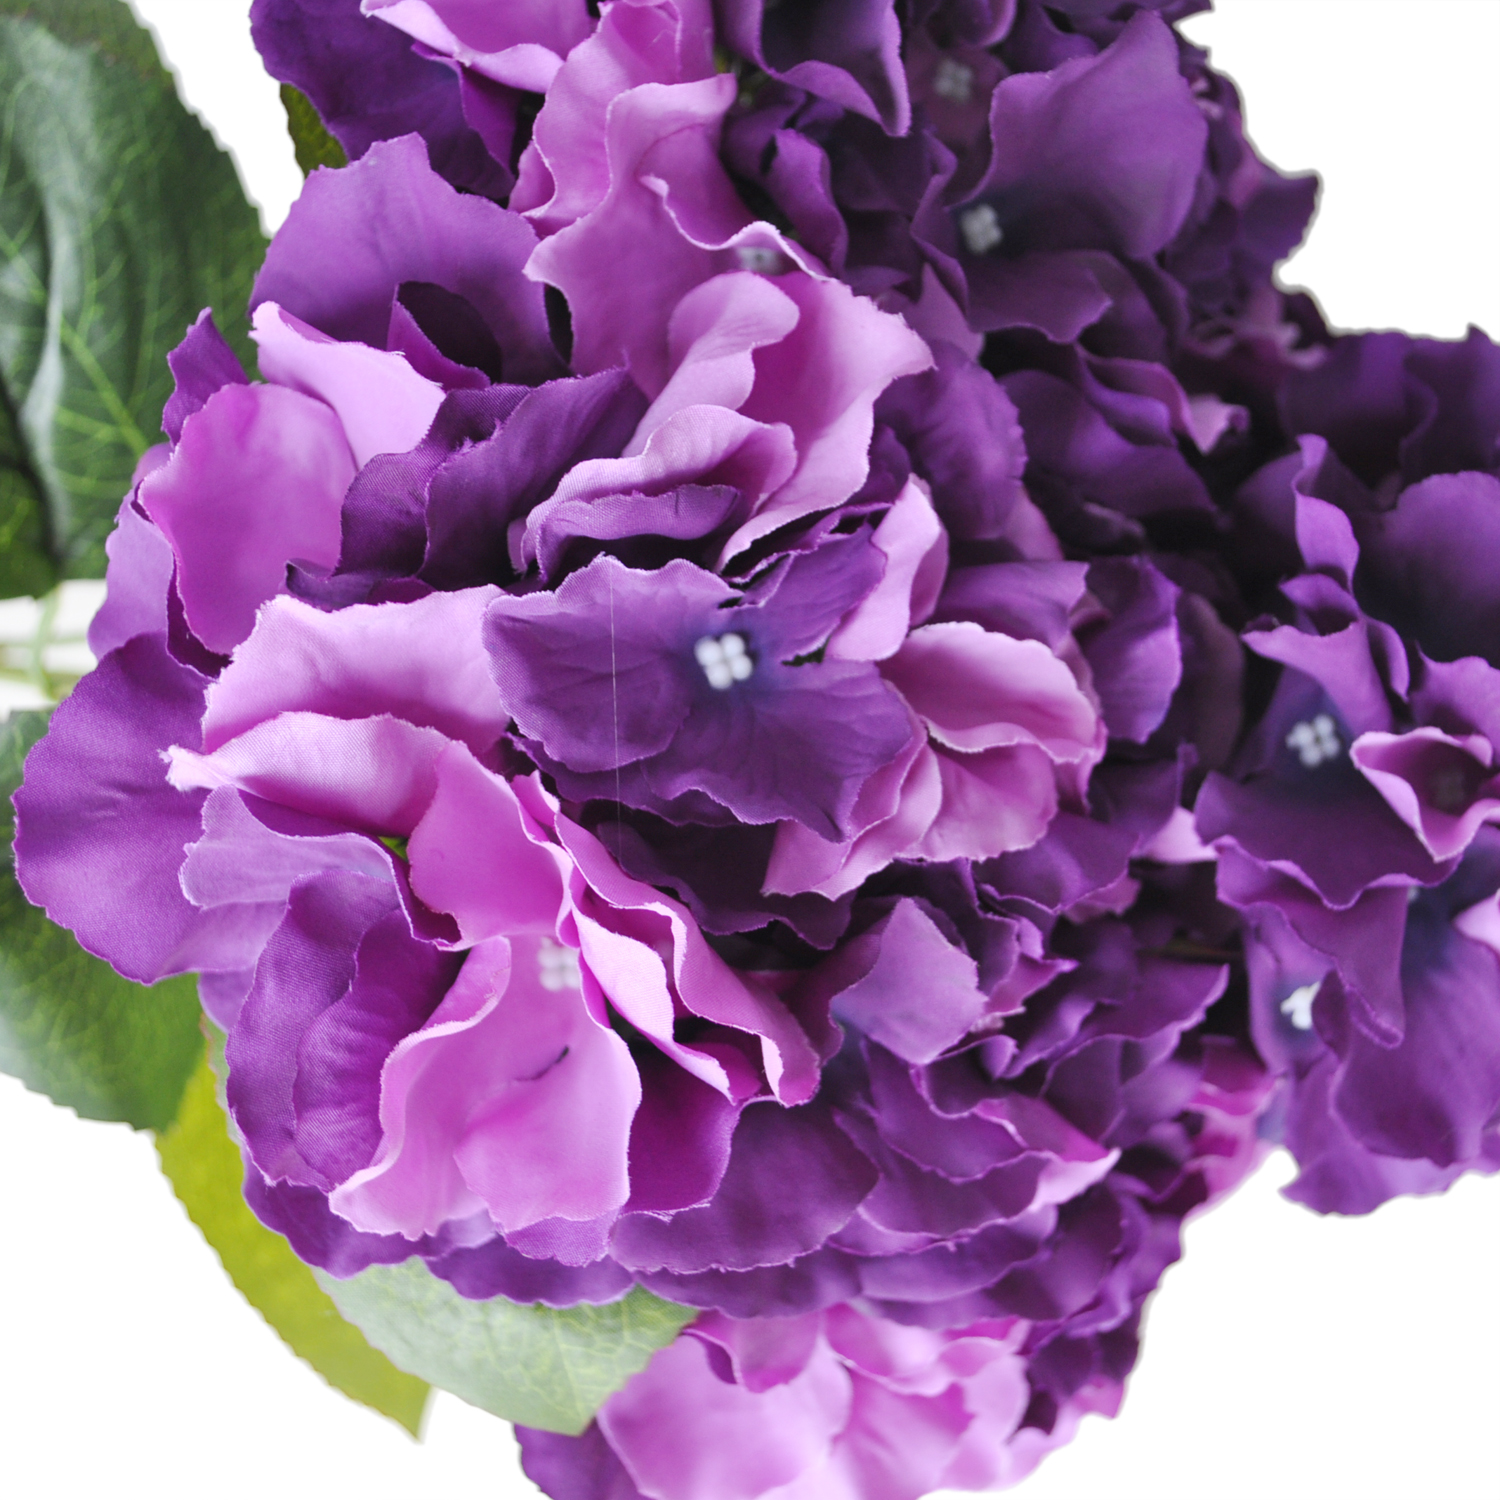 Artificial Hydrangea Flower 5 Big Heads Bouquet Diameter 7 Each